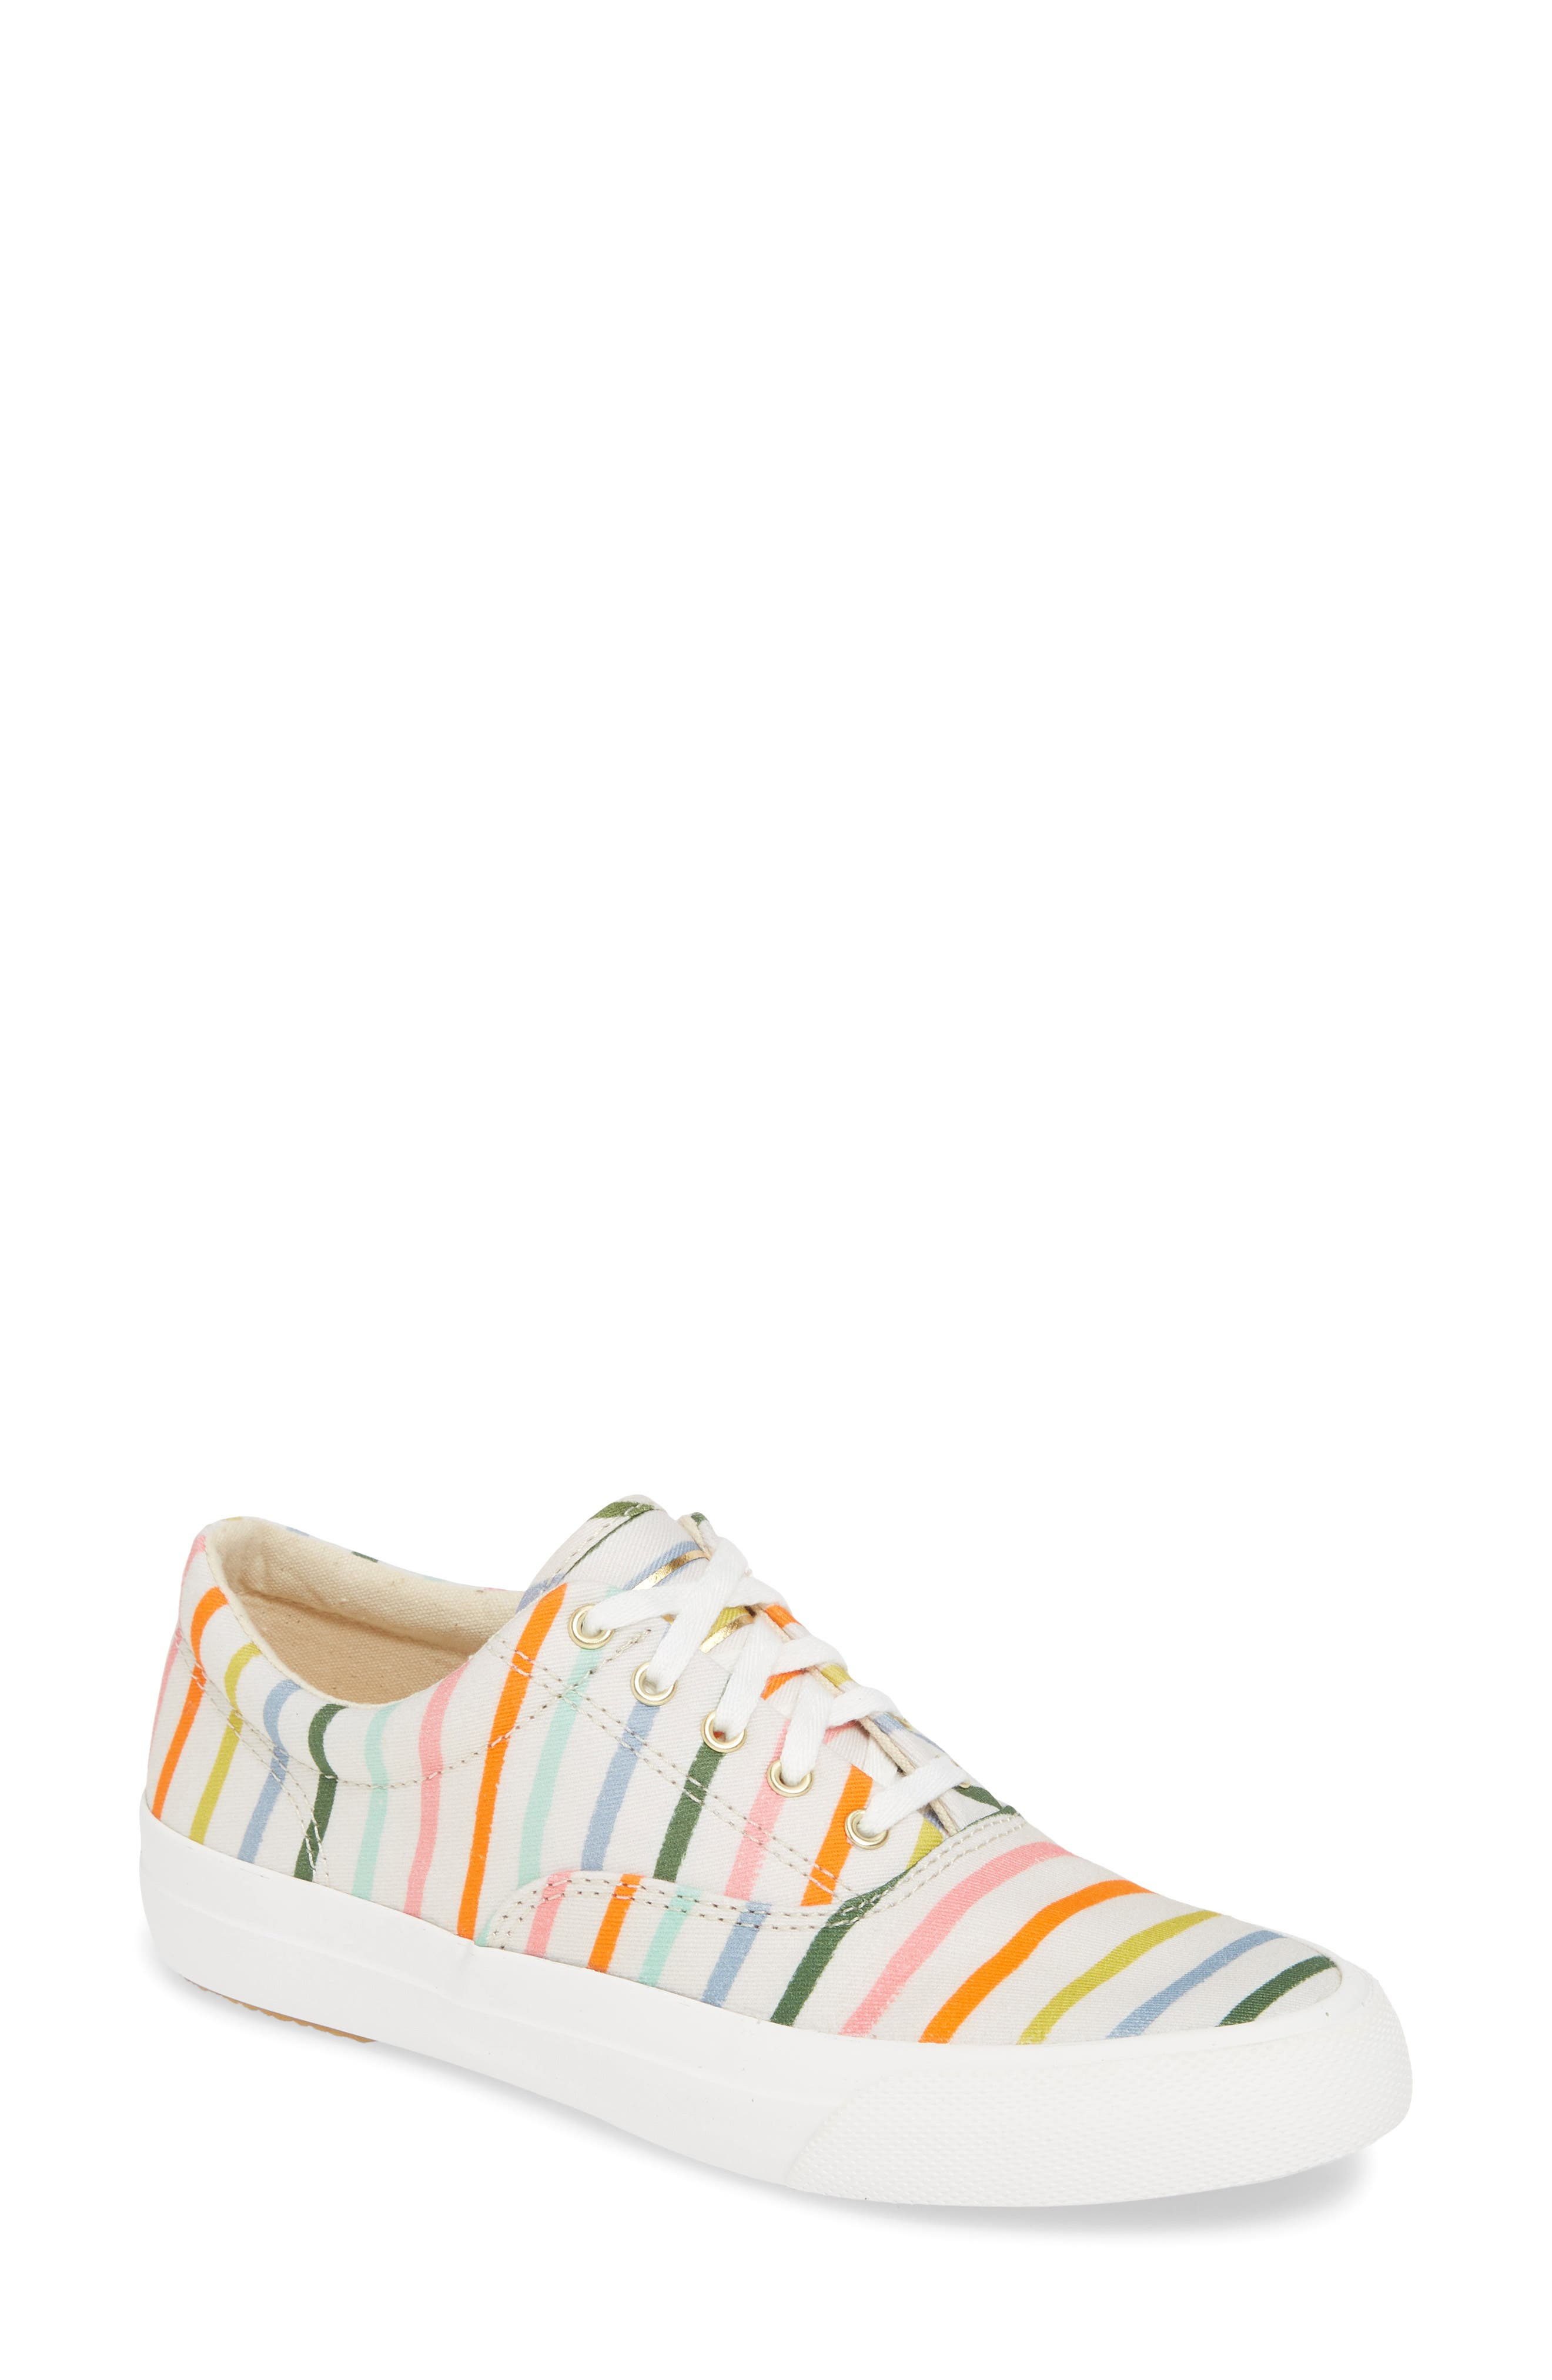 Keds X Rifle Paper Co. Anchor Sneaker, White